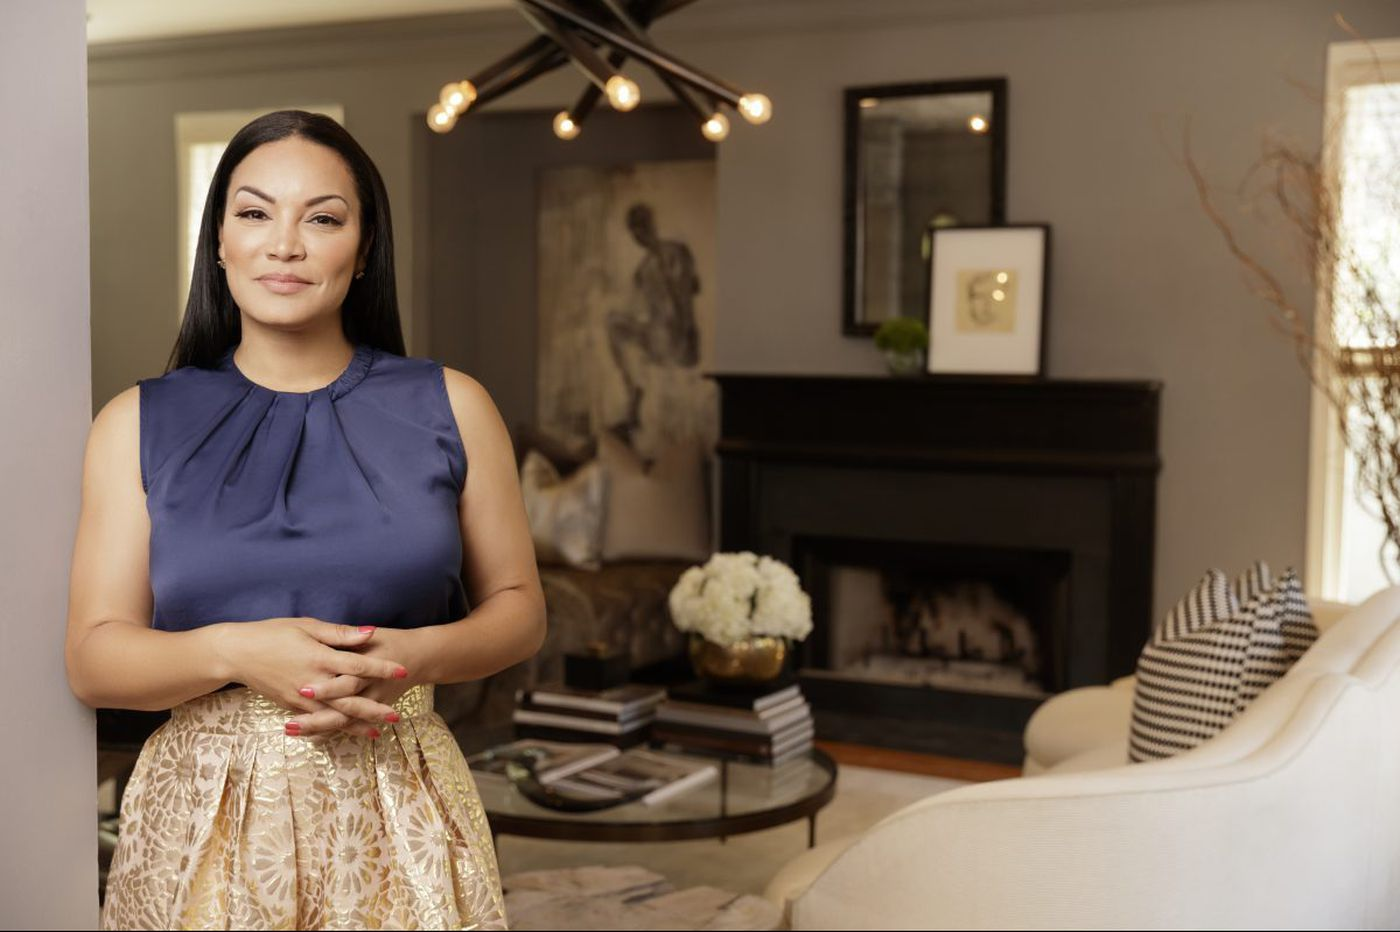 'Real estate is the foundation of wealth,' says former Philly radio personality and host of HGTV's 'Flipping Virgins'